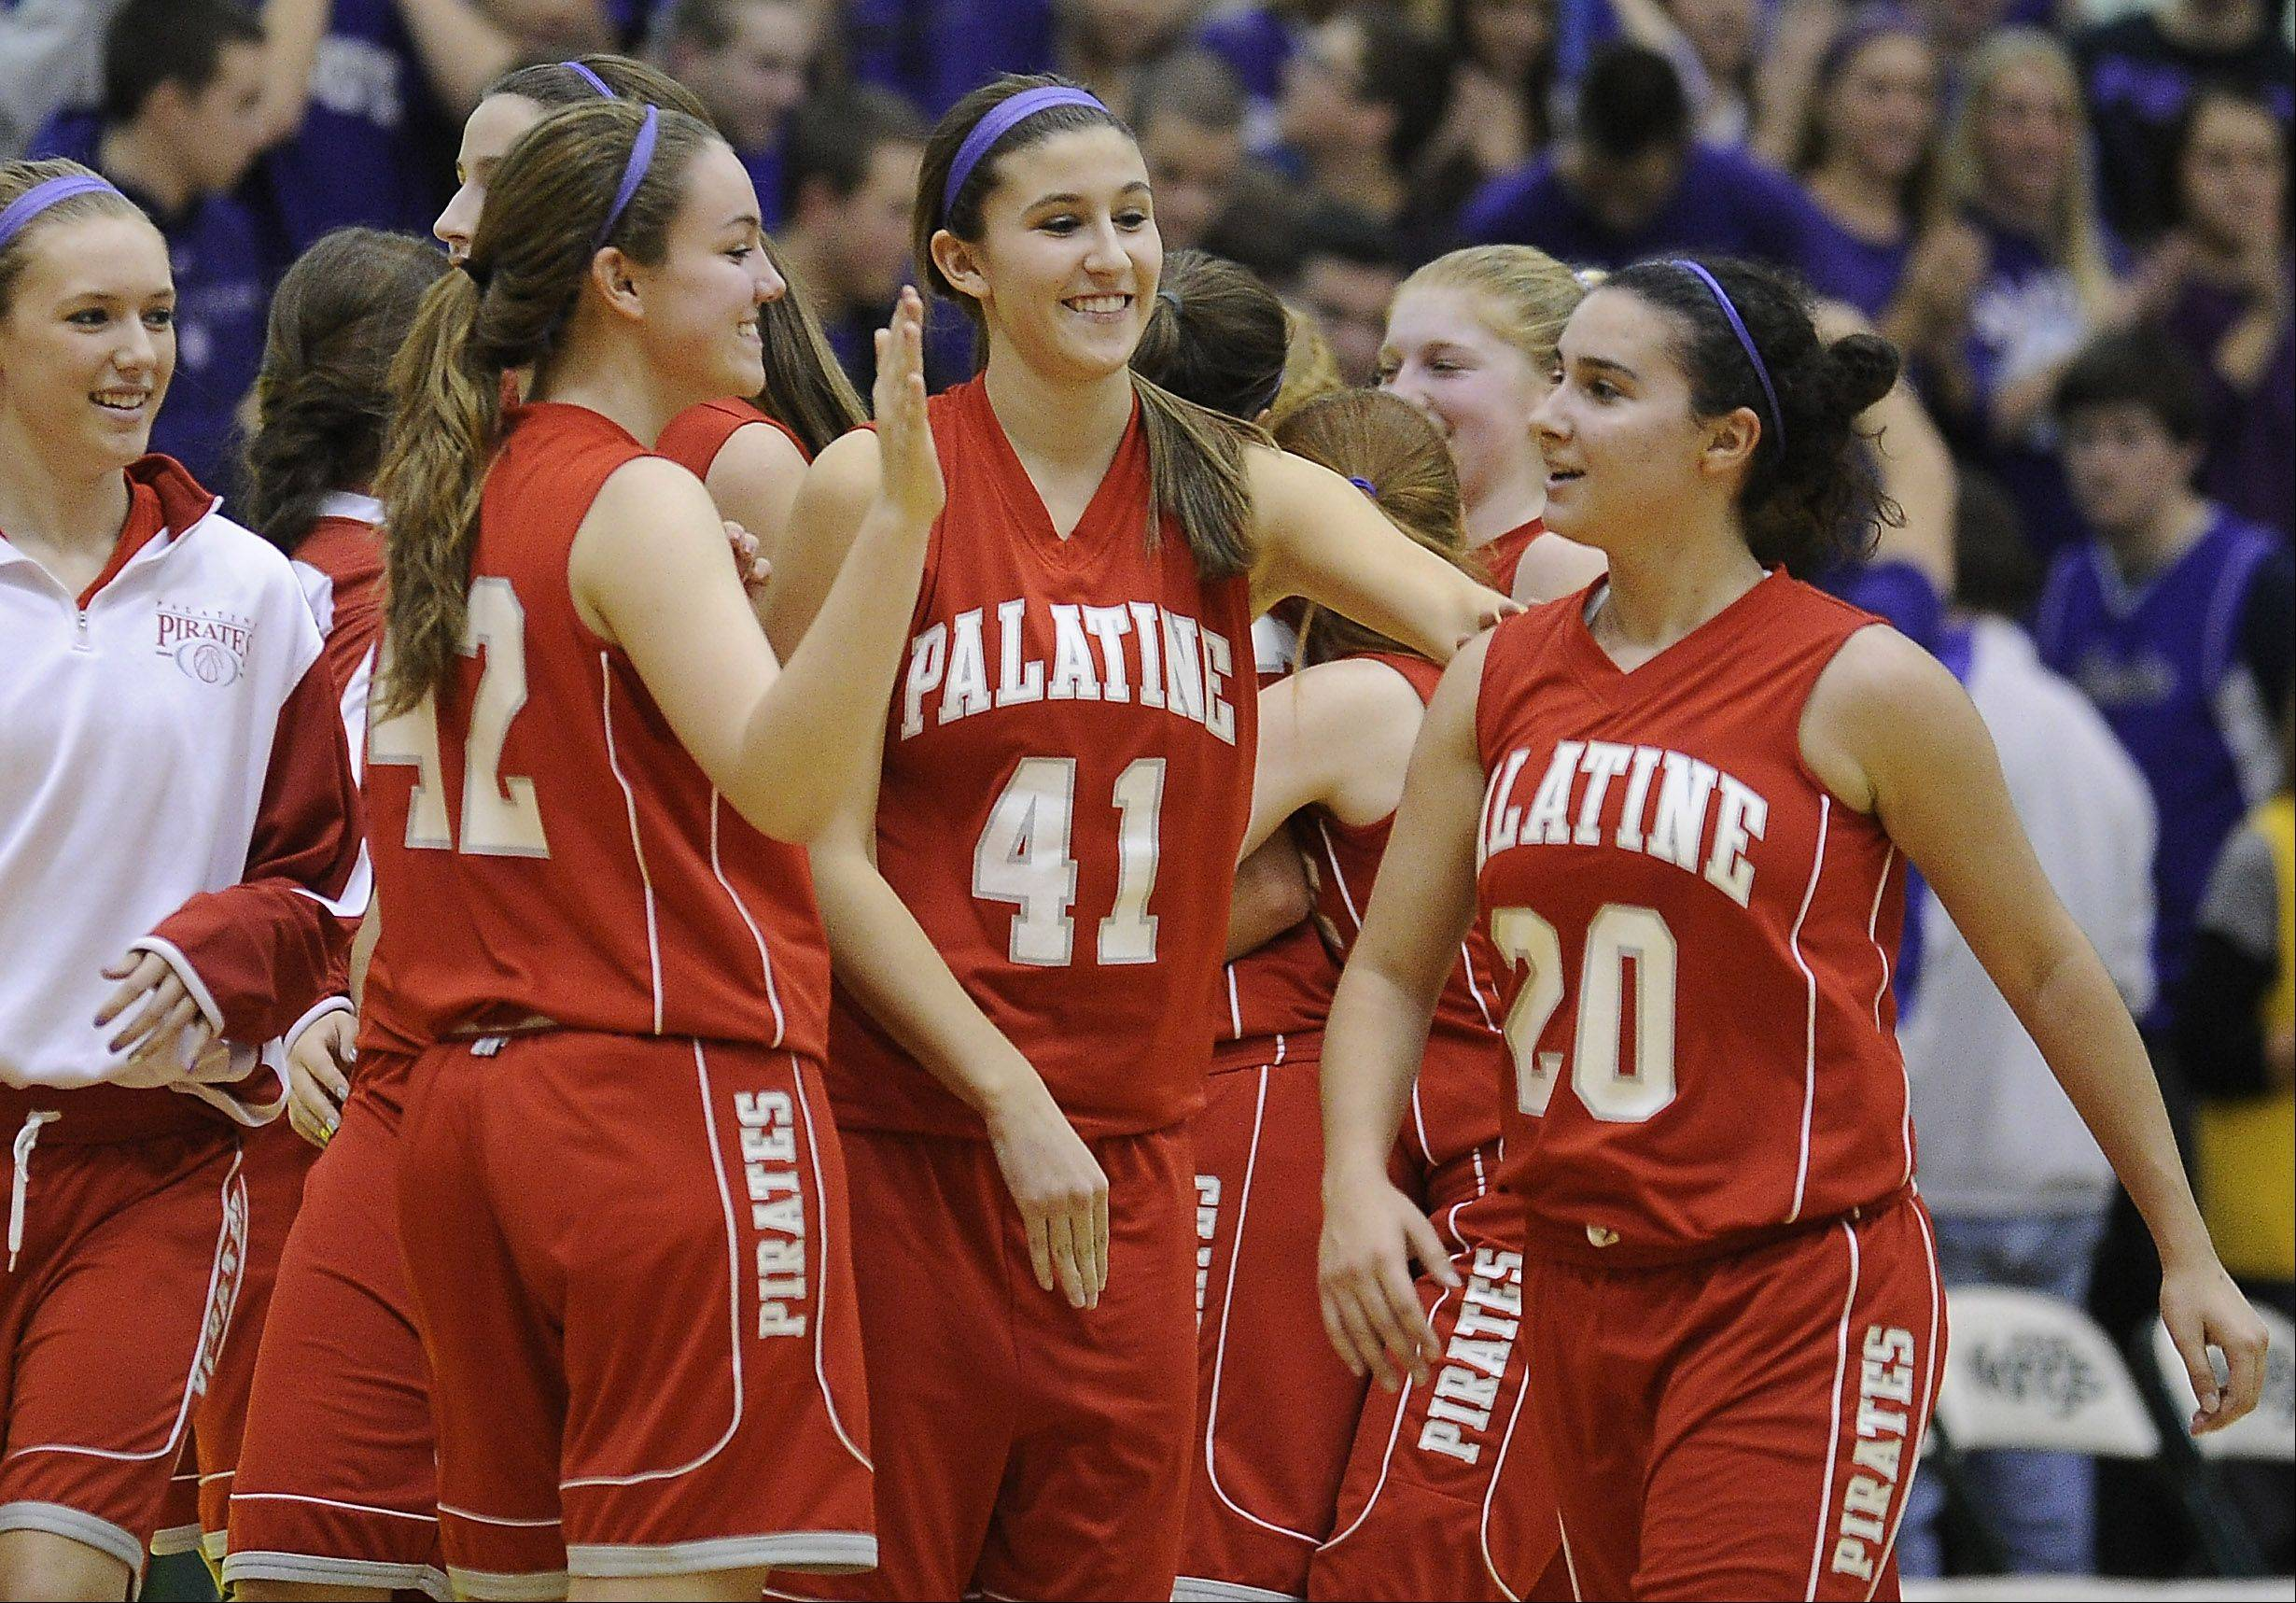 Palatine's Carrissa Multon, Marissa Masini and Nia Pappas celebrate their victory over Fremd in the girls varsity basketball game at Fremd High School on Friday.